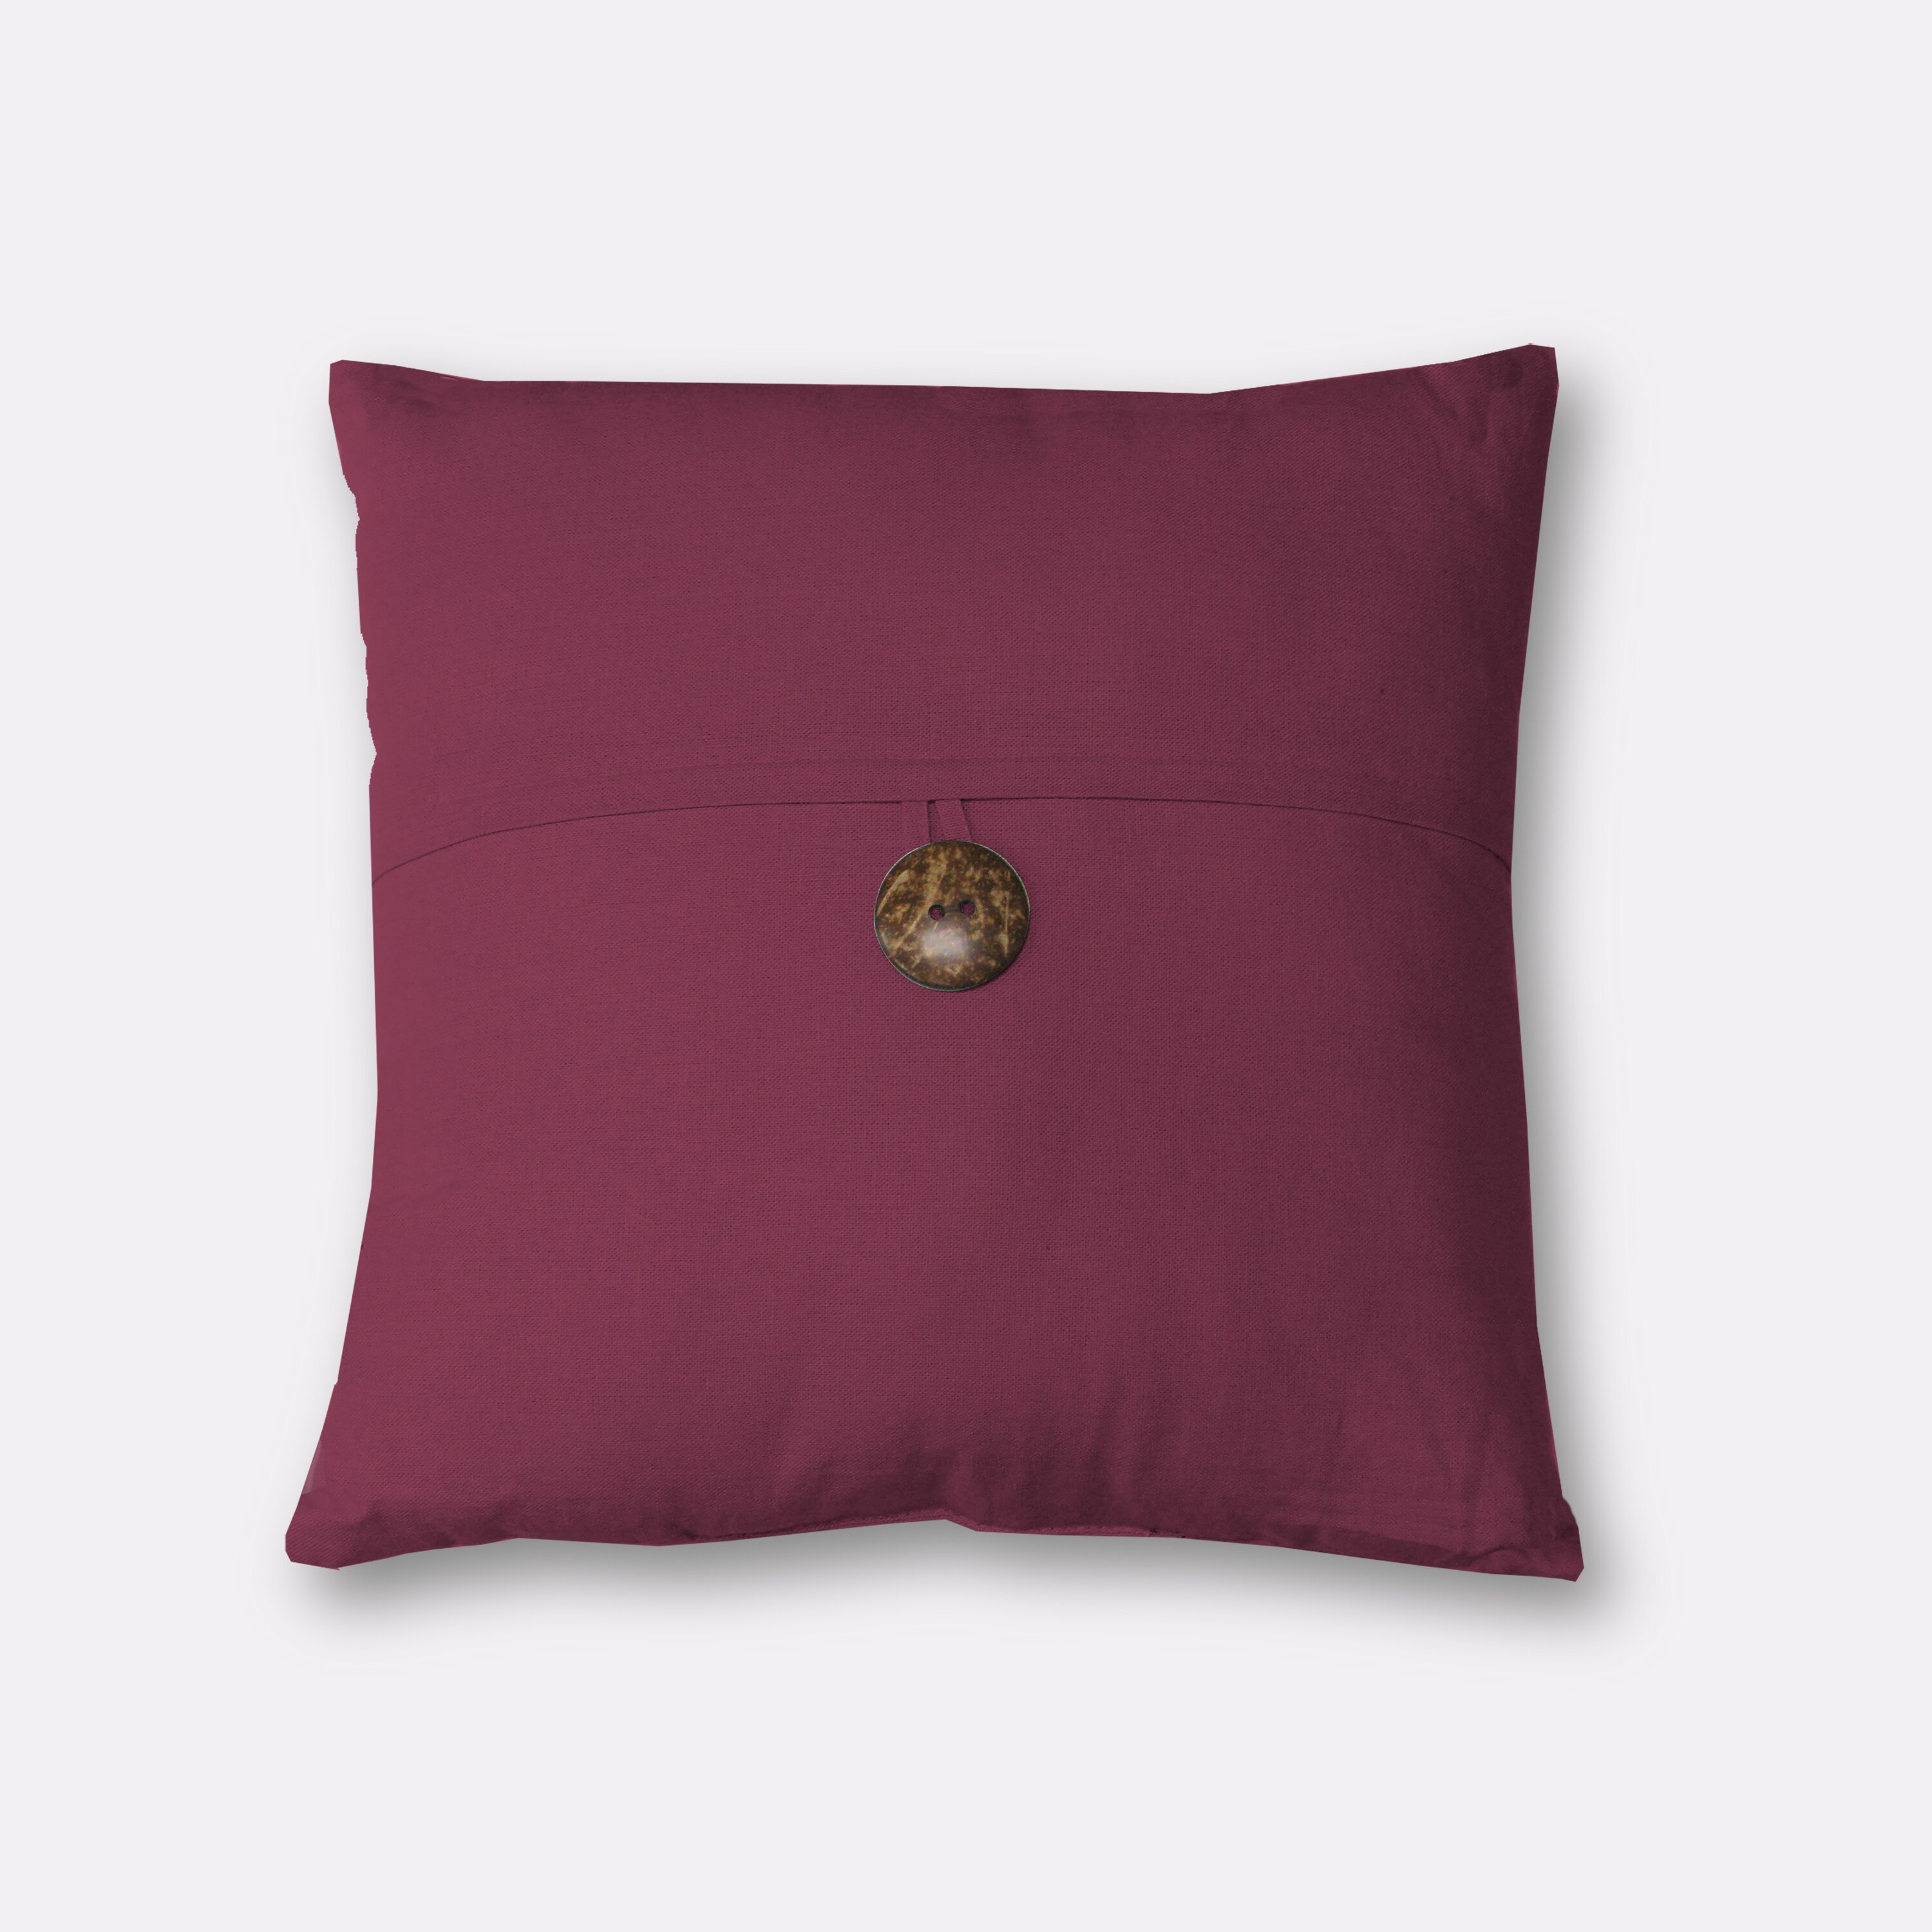 Throw Pillows With Buttons : Elrene Home Fashions Essex Button Decorative Throw Pillow & Reviews Wayfair